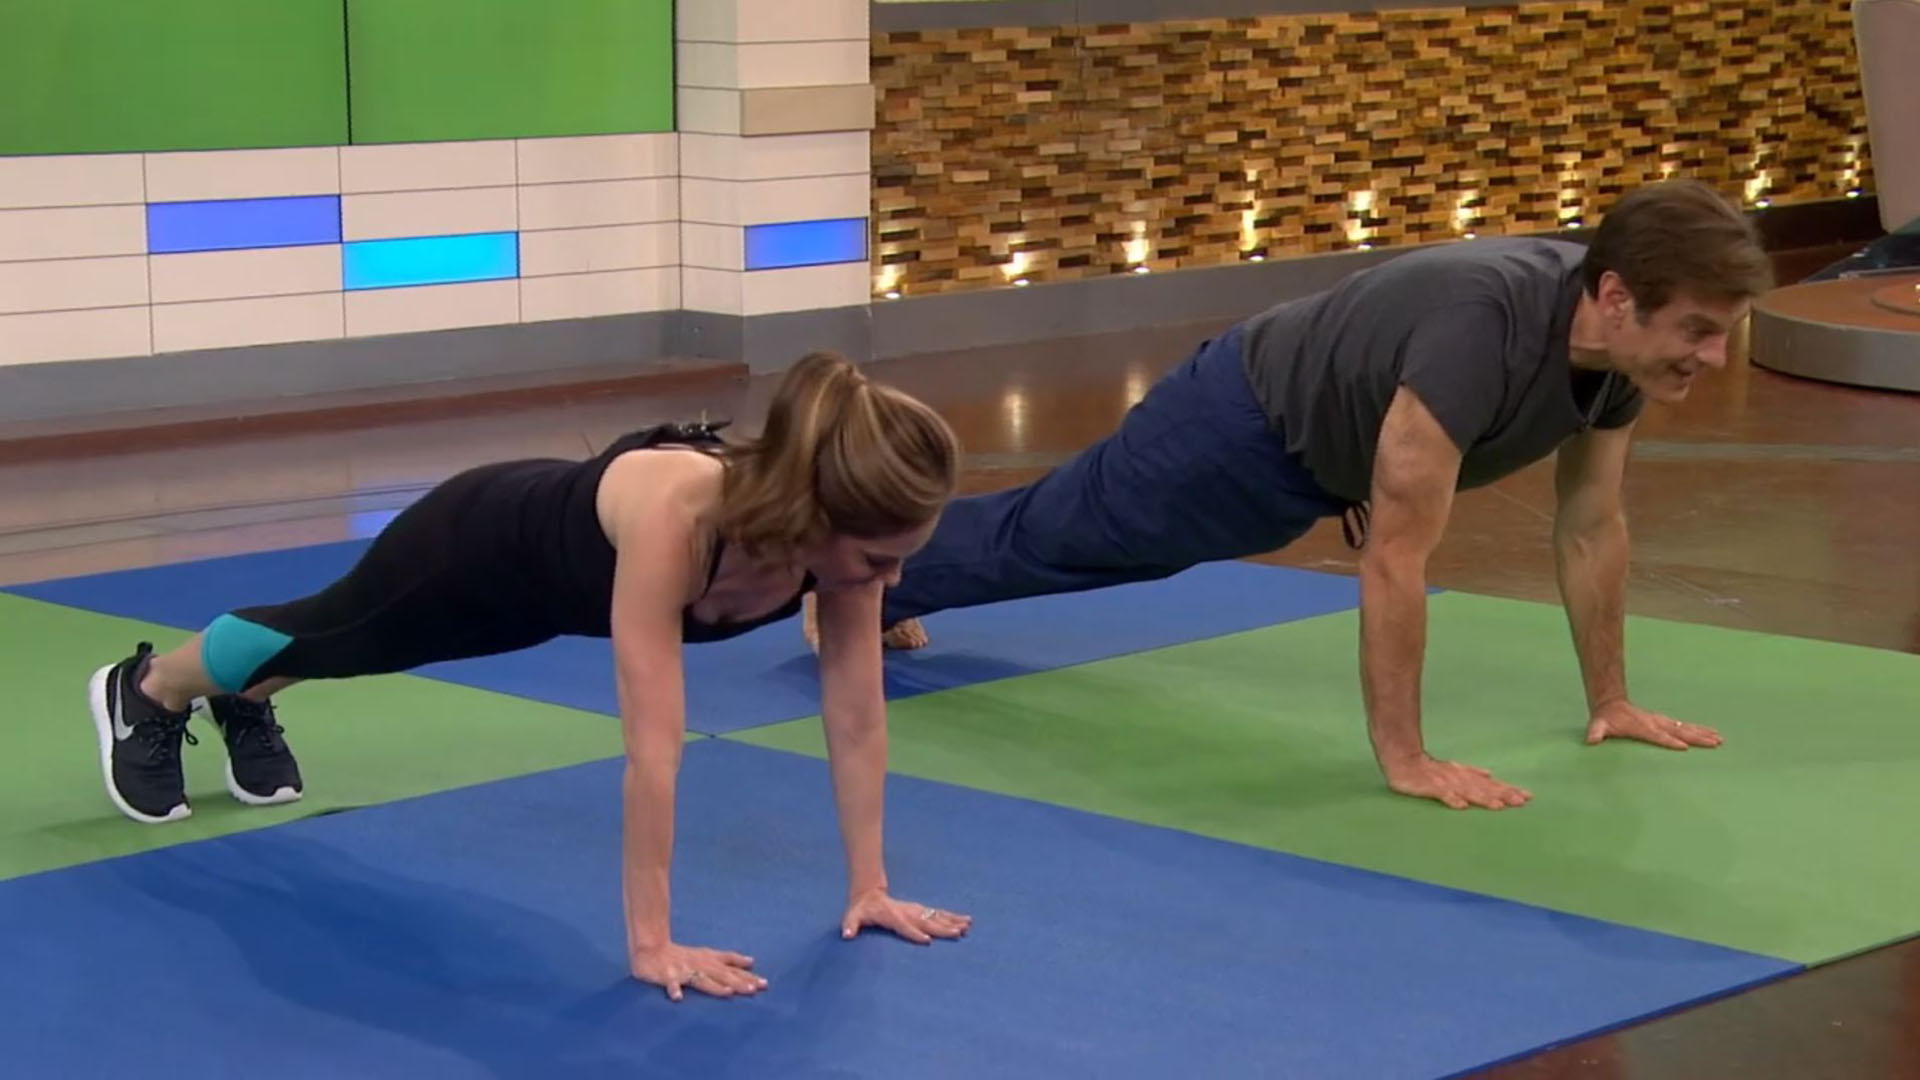 Delicate image intended for dr oz 7 minute workout printable